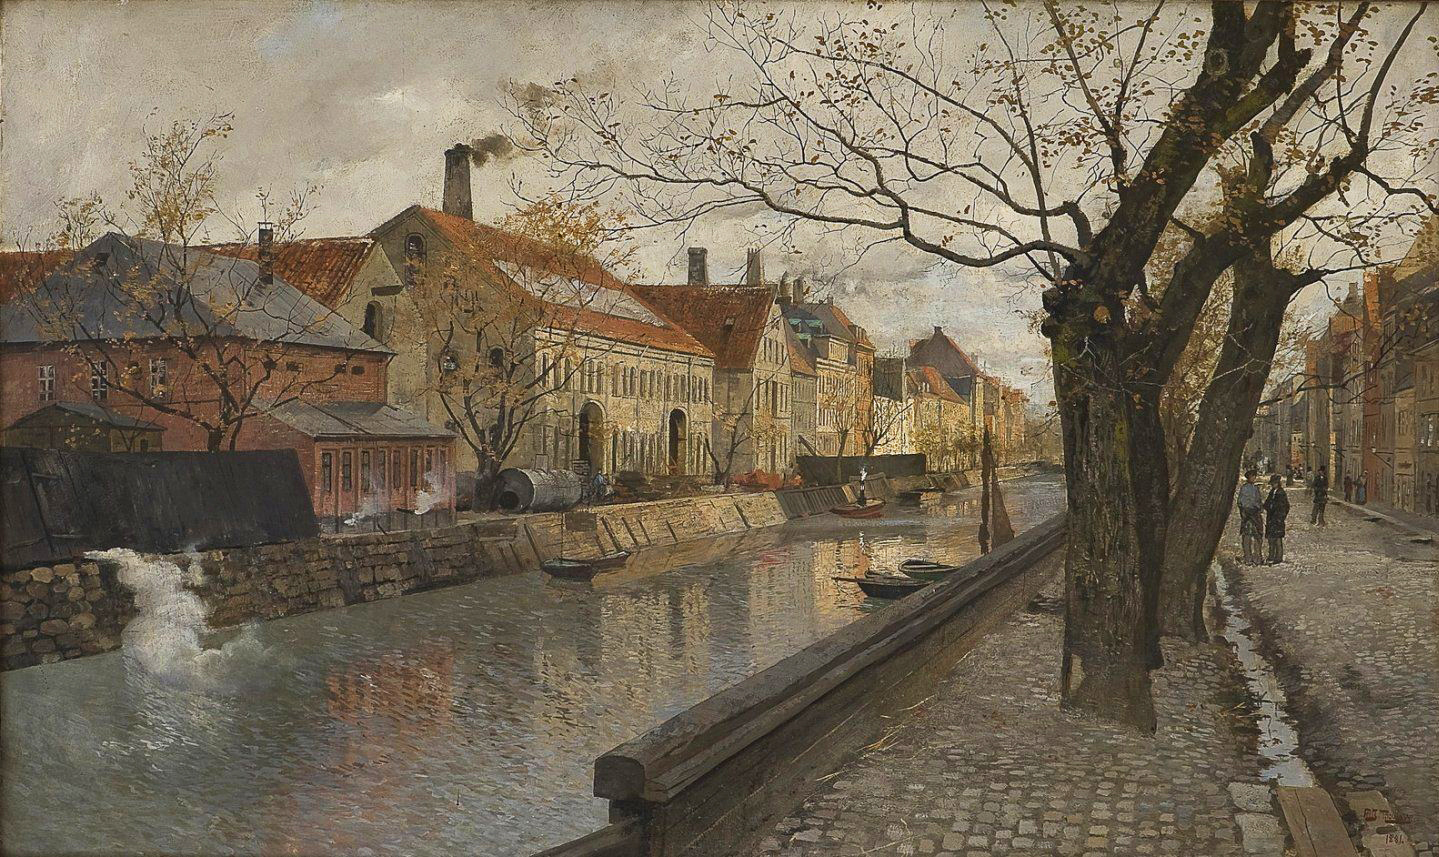 Frits Thaulow - View of Overgaden, 1881